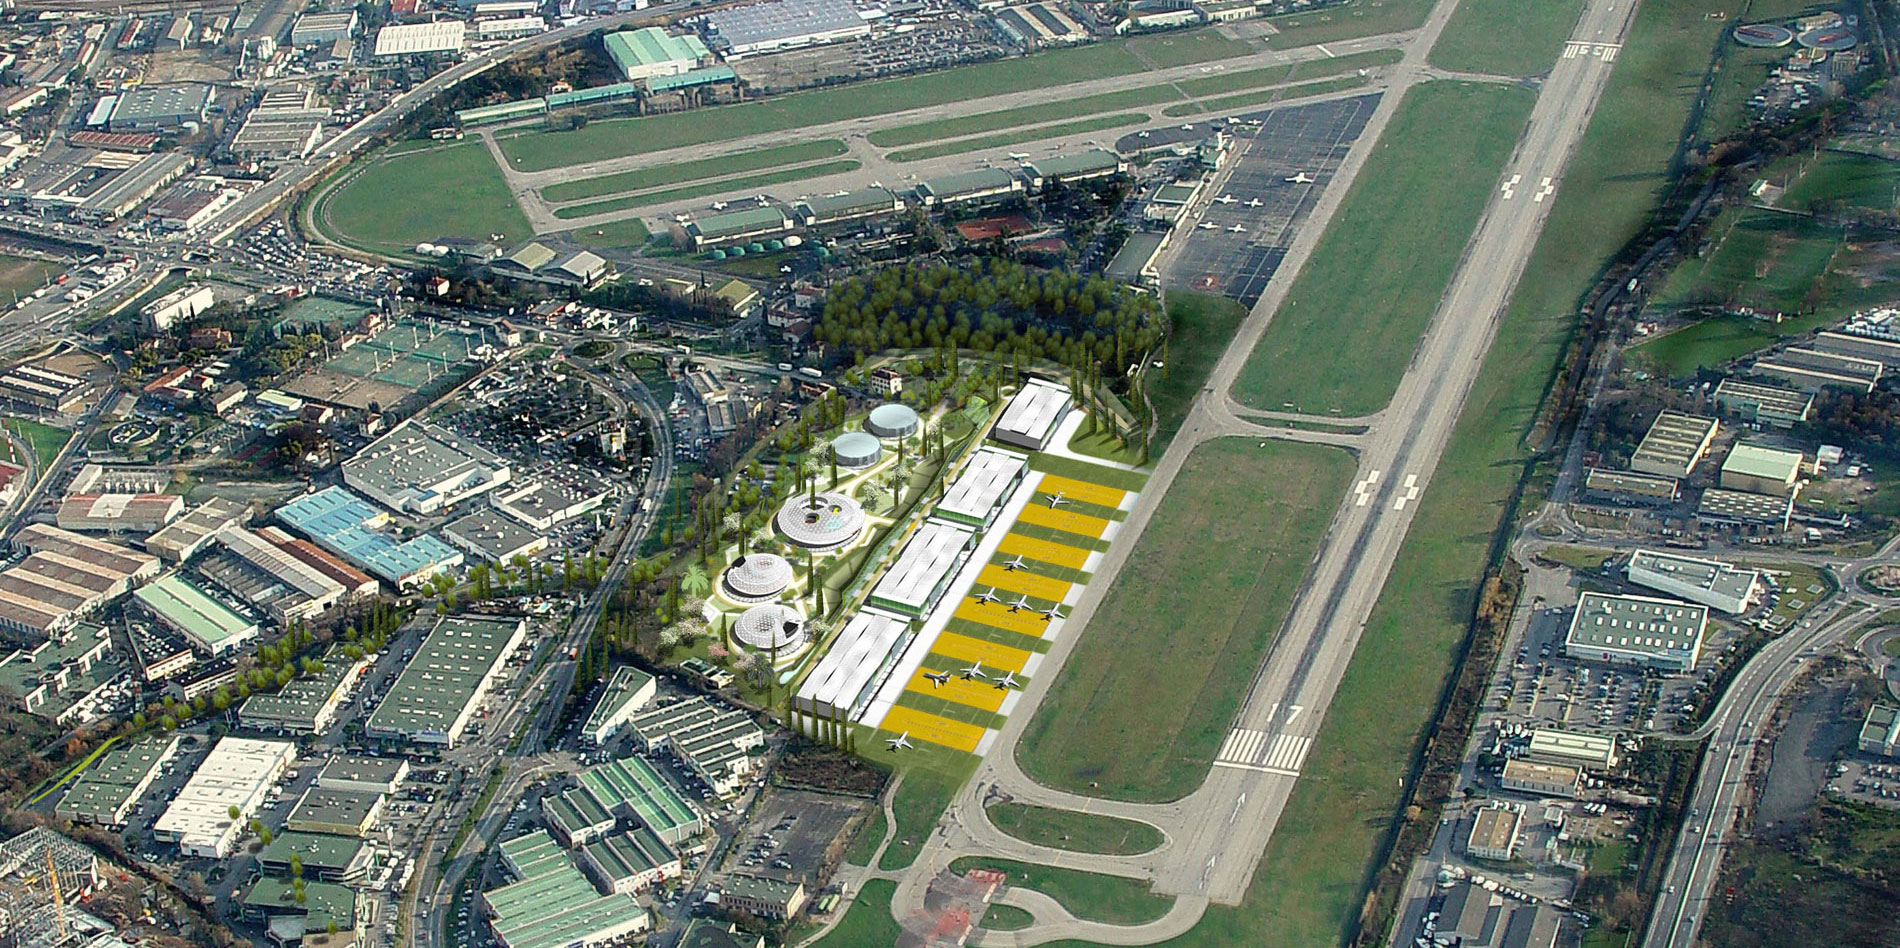 Aaupc patrick chavannes cannes airport Airport planning and design course